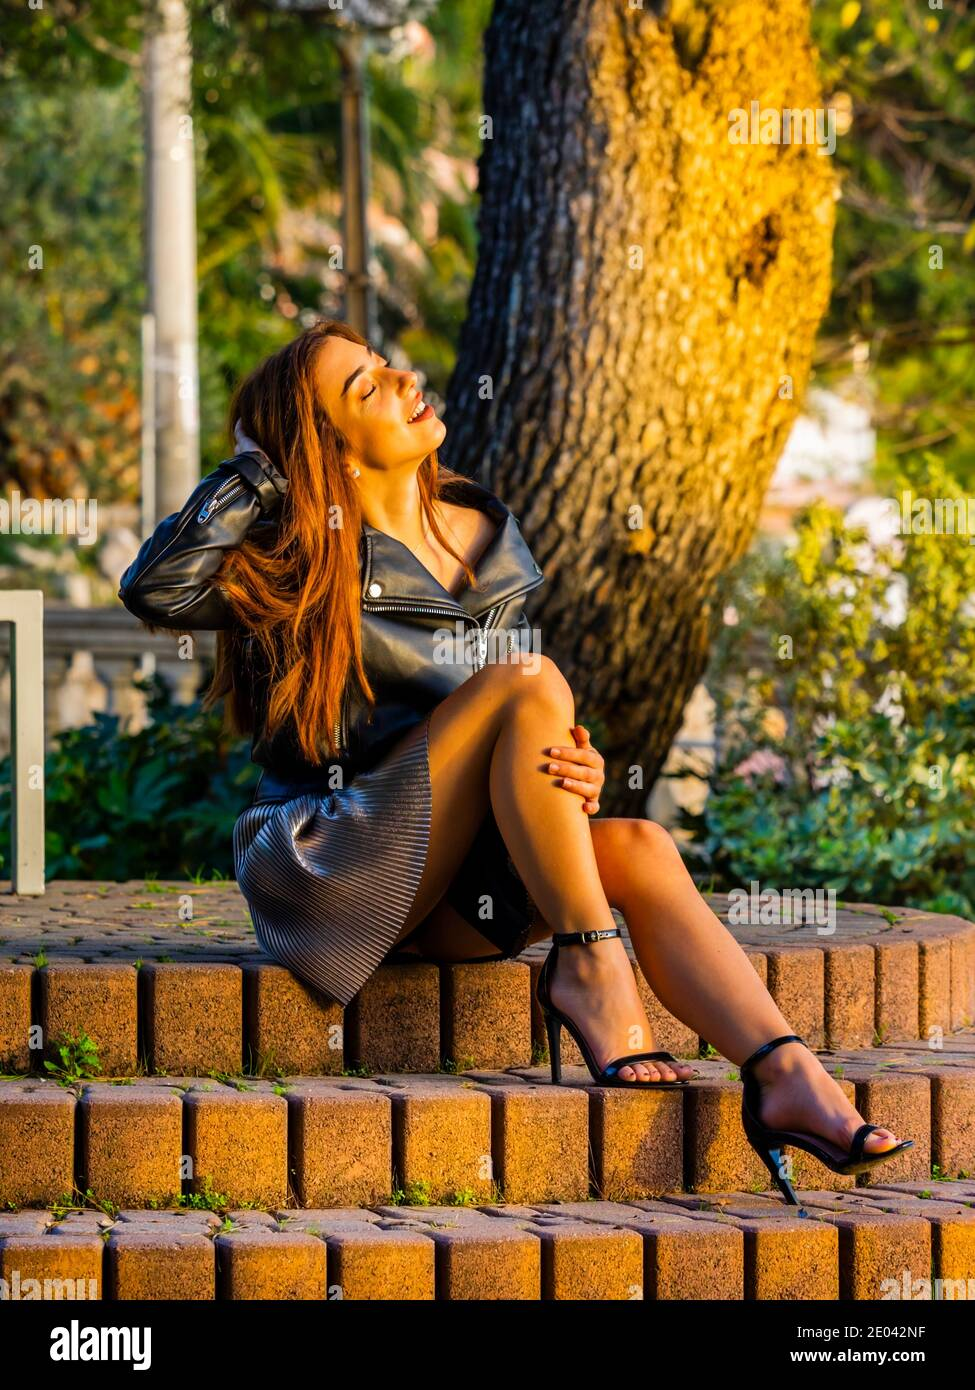 Teengirl sitting seated steps stairs in park daydreaming drunder lit by warm late afternoon sunset light legs heels full length whole body bit sexy Stock Photo